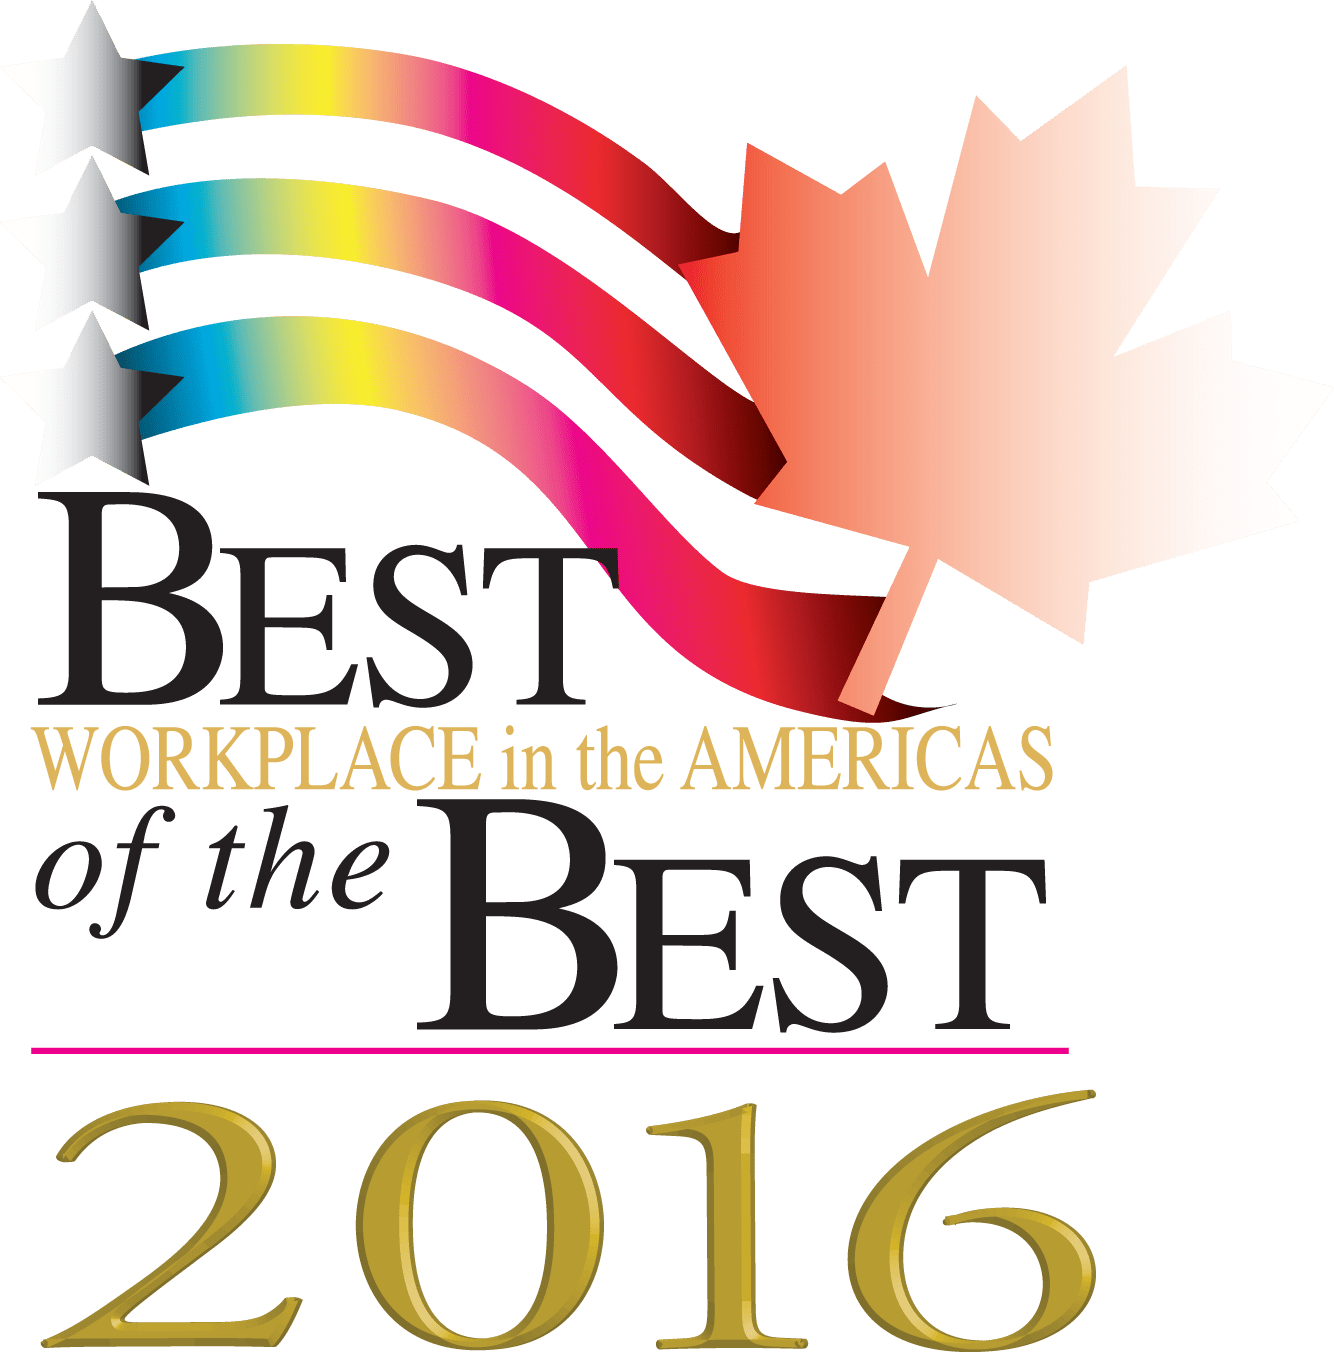 2016 Best Workplace in the Americas Awards